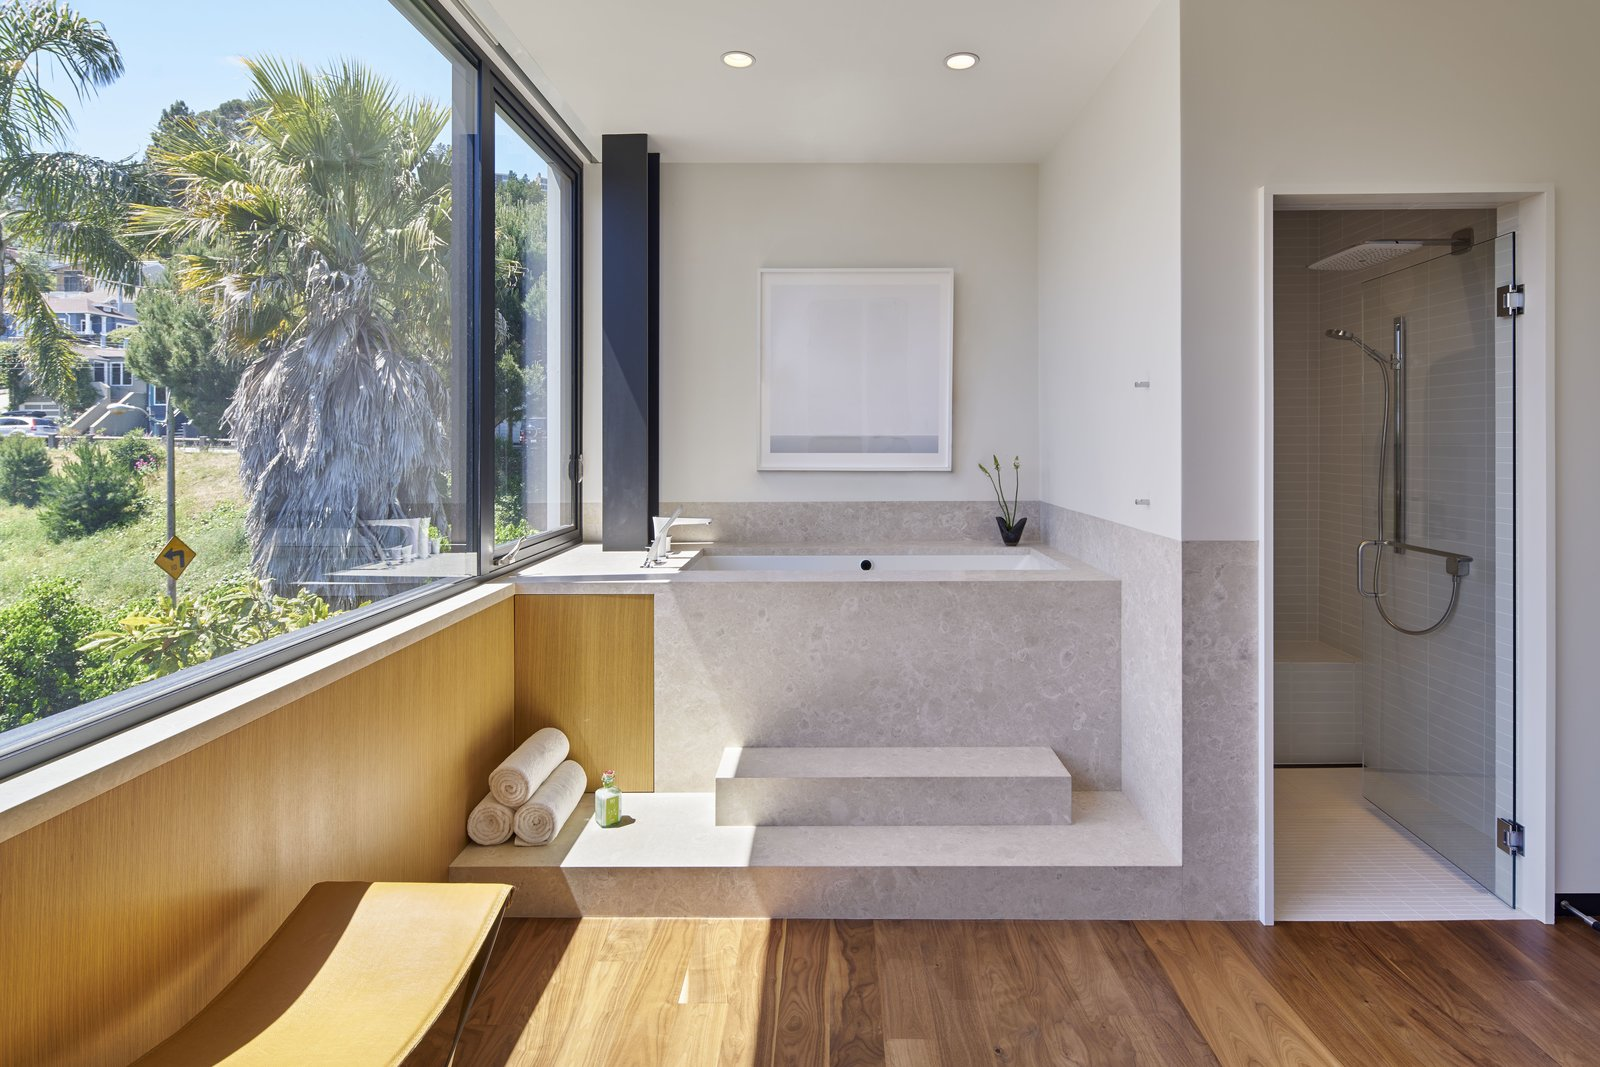 Tagged: Bath Room, Medium Hardwood Floor, Drop In Tub, Soaking Tub, Enclosed Shower, Corner Shower, Full Shower, and Recessed Lighting.  29th Street Residence by Schwartz and Architecture